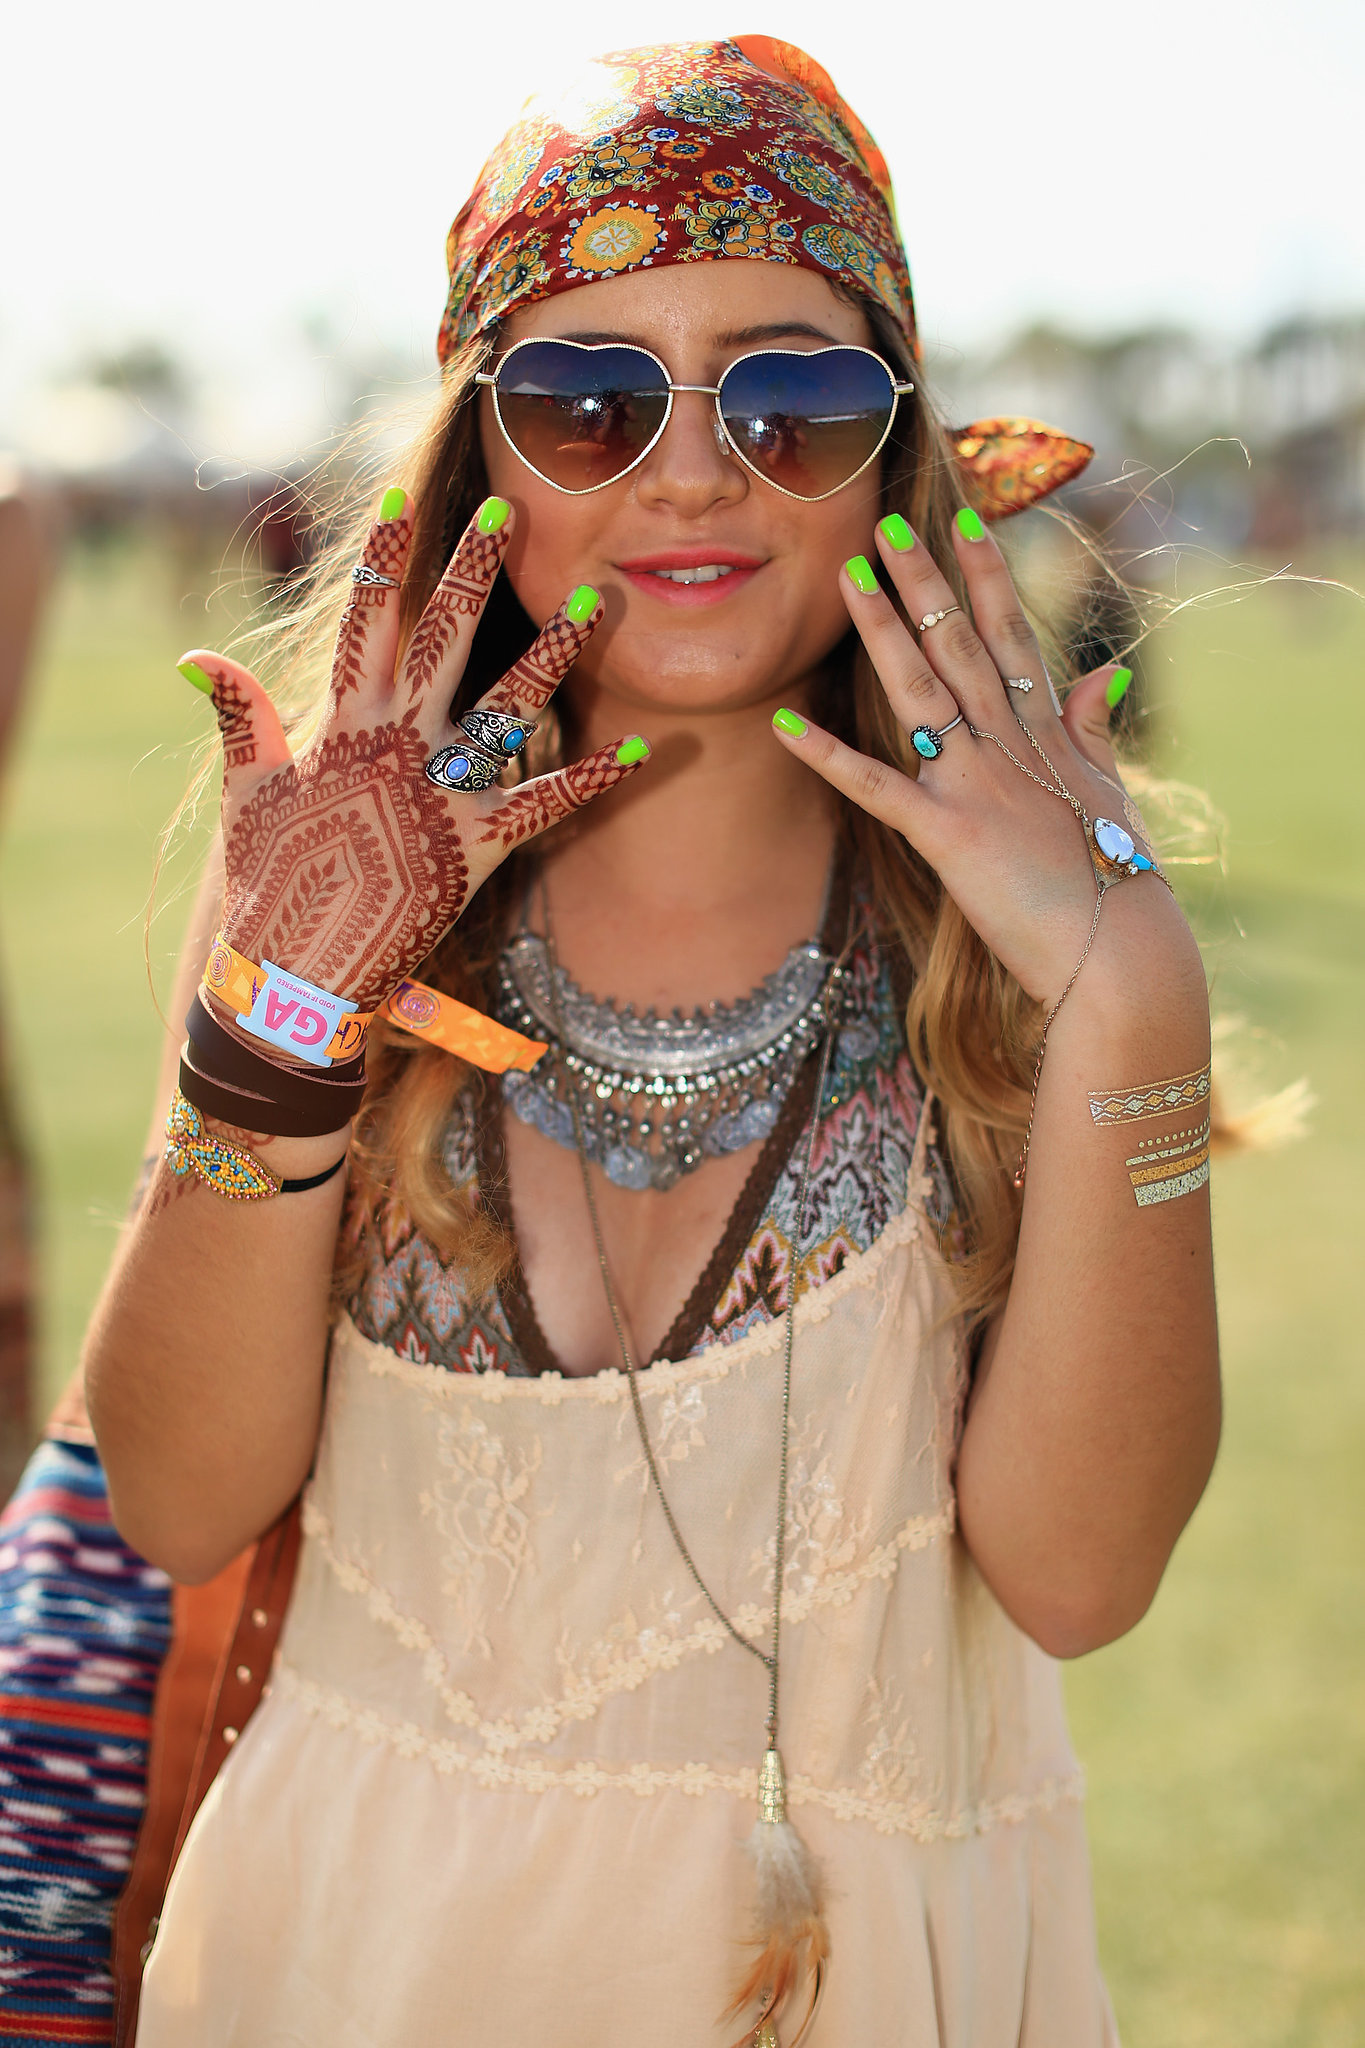 Festival Fashion Accessories Coachella Accessories Are About So Much More Than Floral Crowns